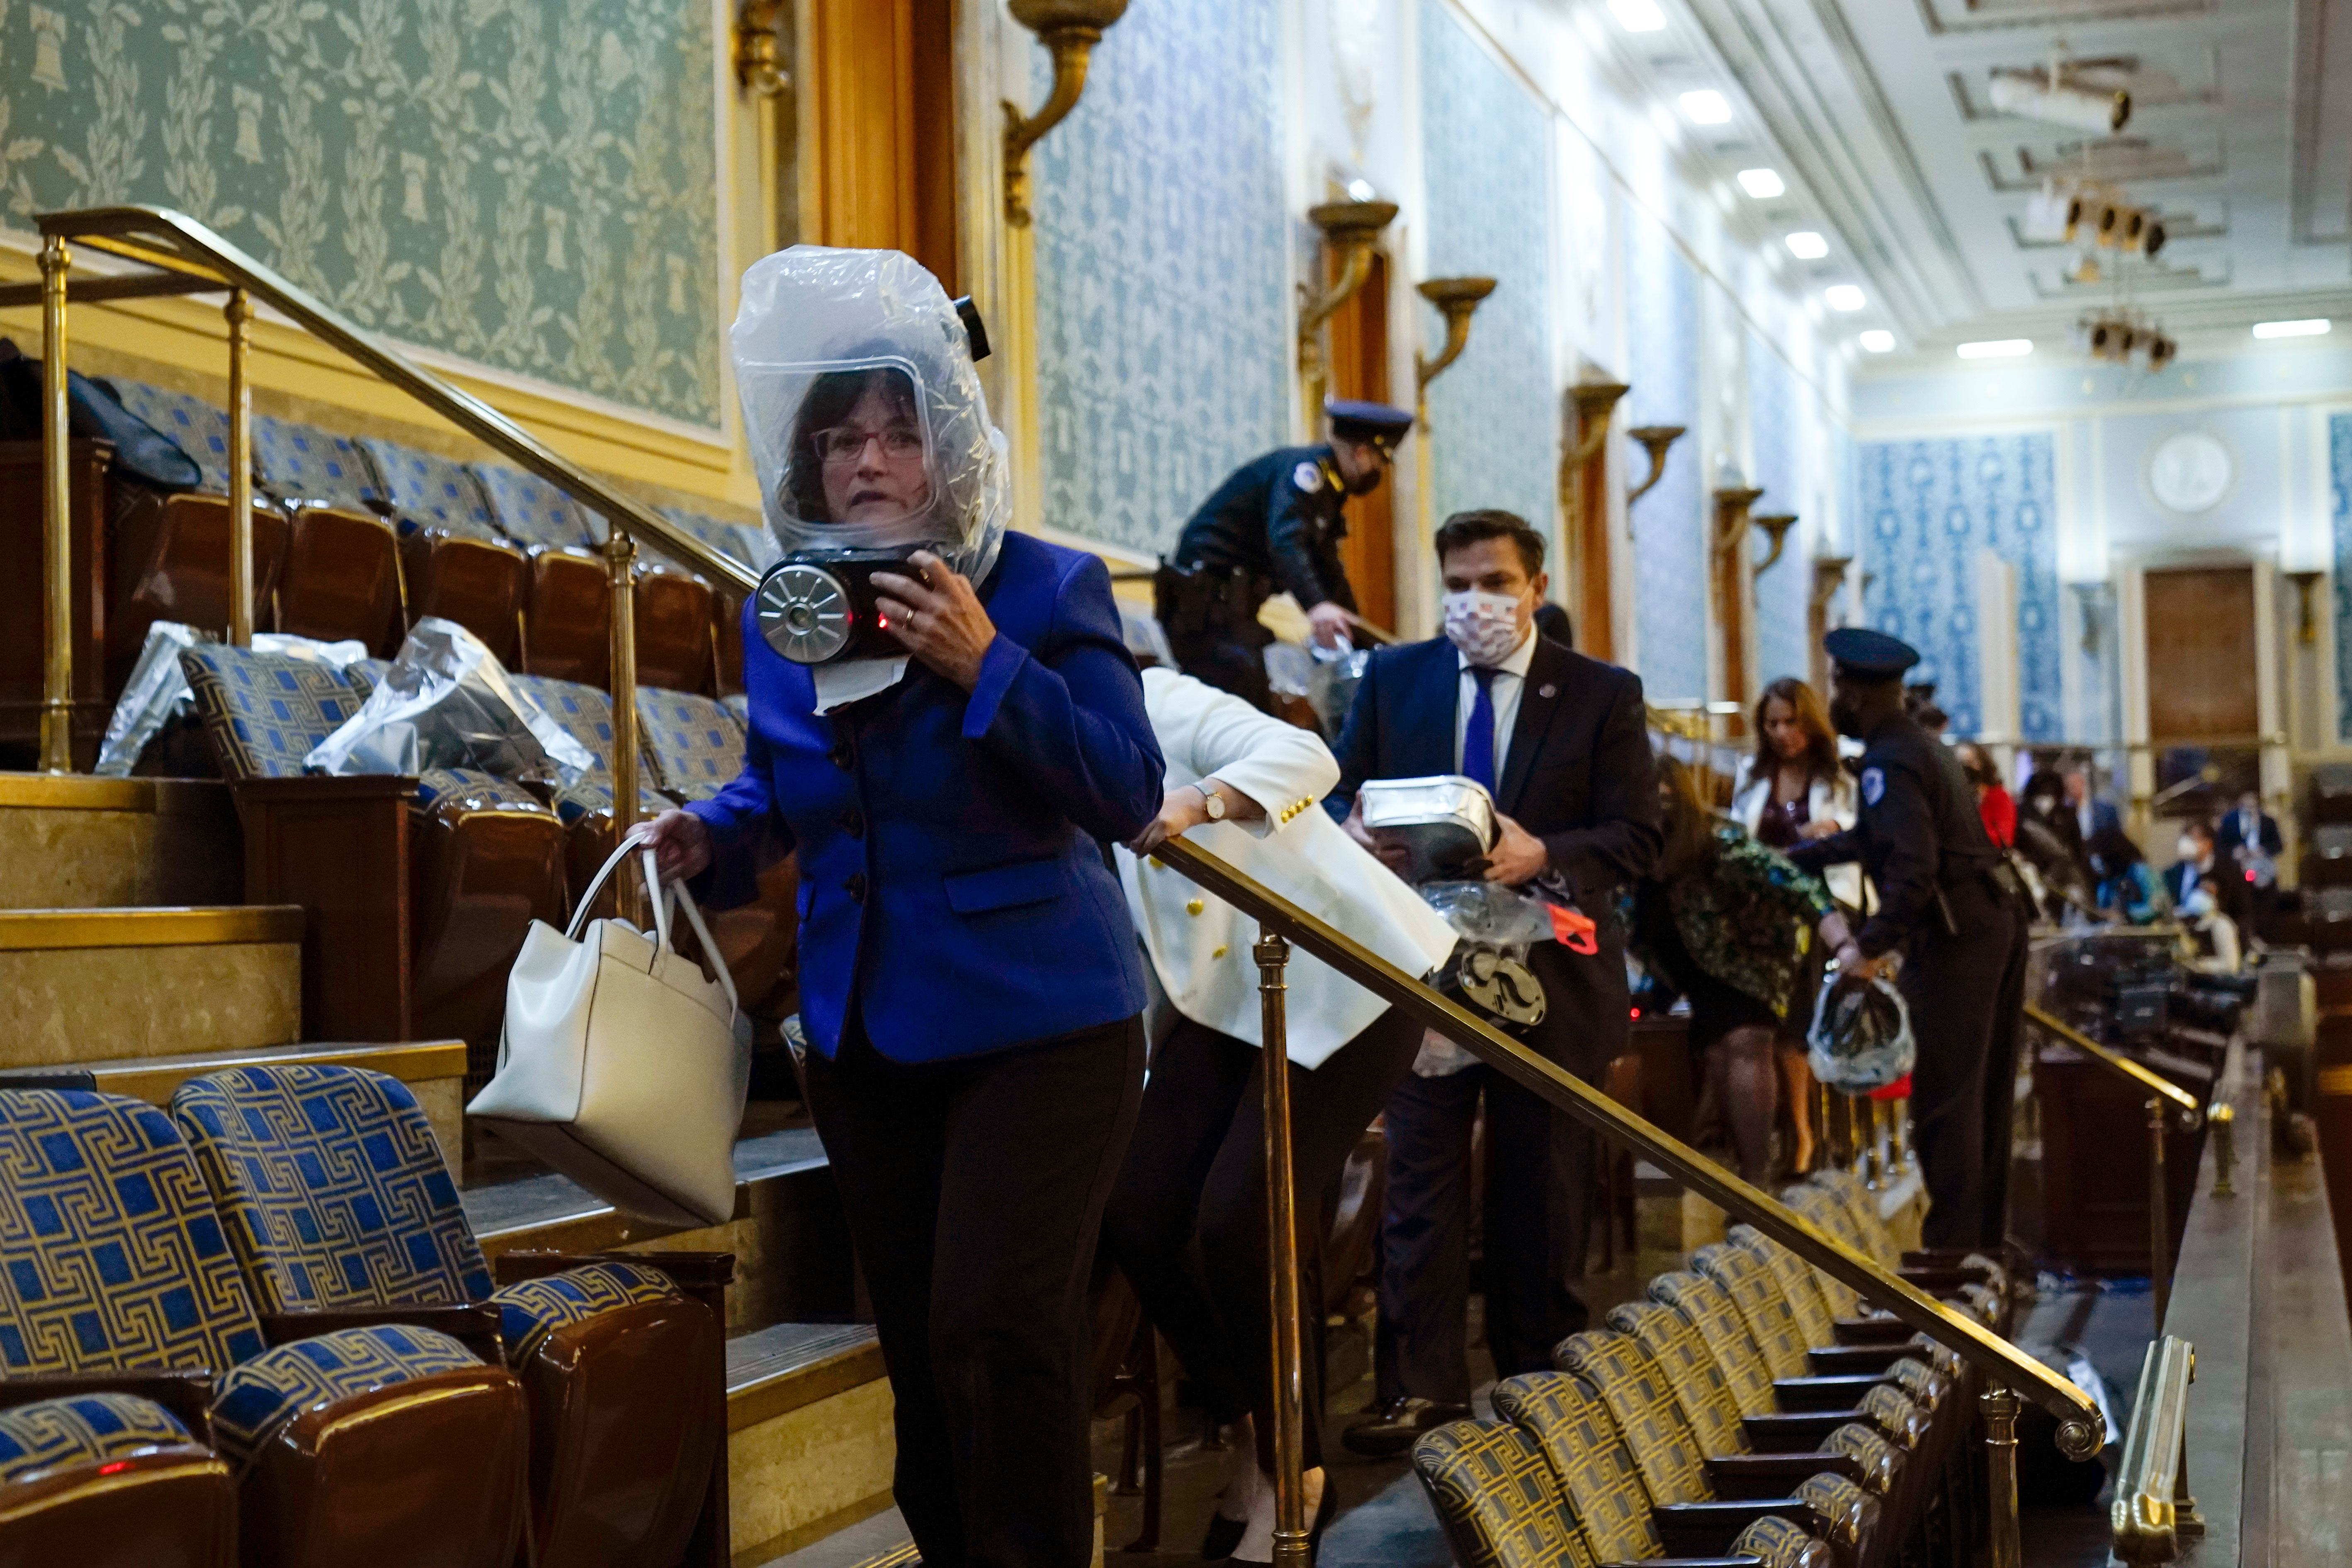 New Hampshire Rep. Annie Kuster, pictured at front in blue, shelters in the House gallery as pro-Trump rioters try to break into the Chamber at the Capitol on January 6.